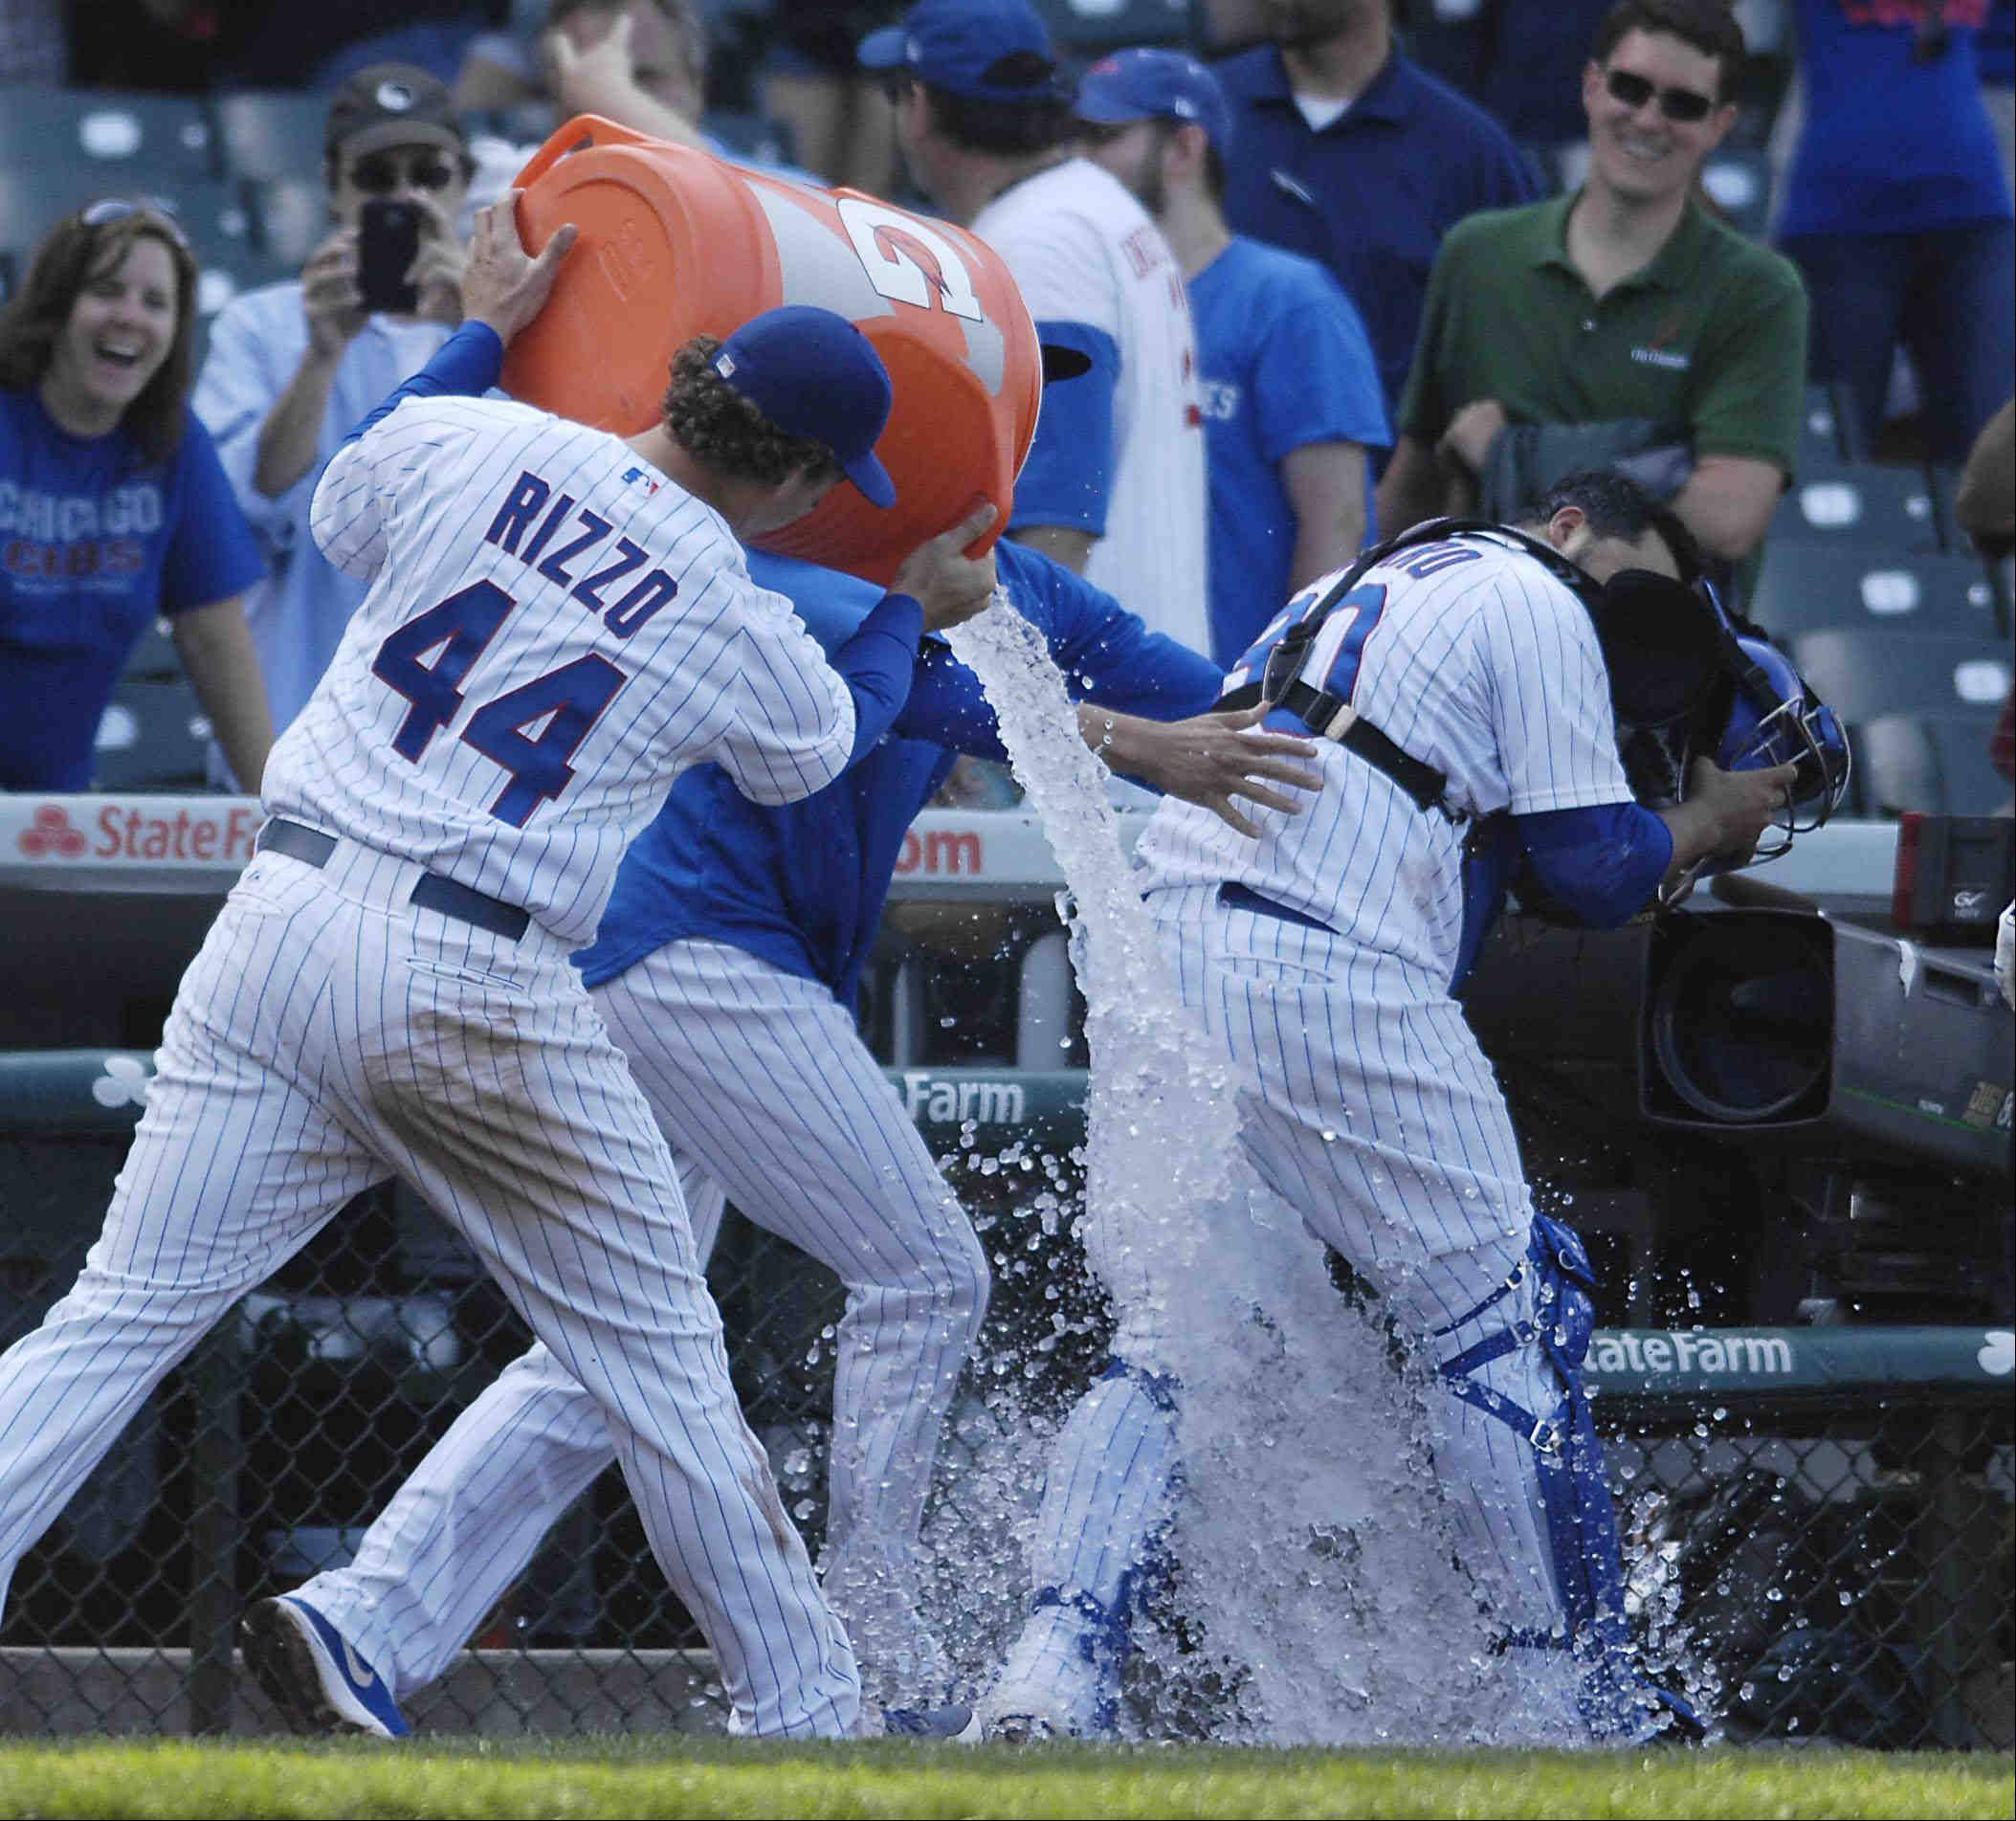 Chicago Cubs first baseman Anthony Rizzo dumps ice water on catcher Dioner Navarro after Navarro's three-home run game.